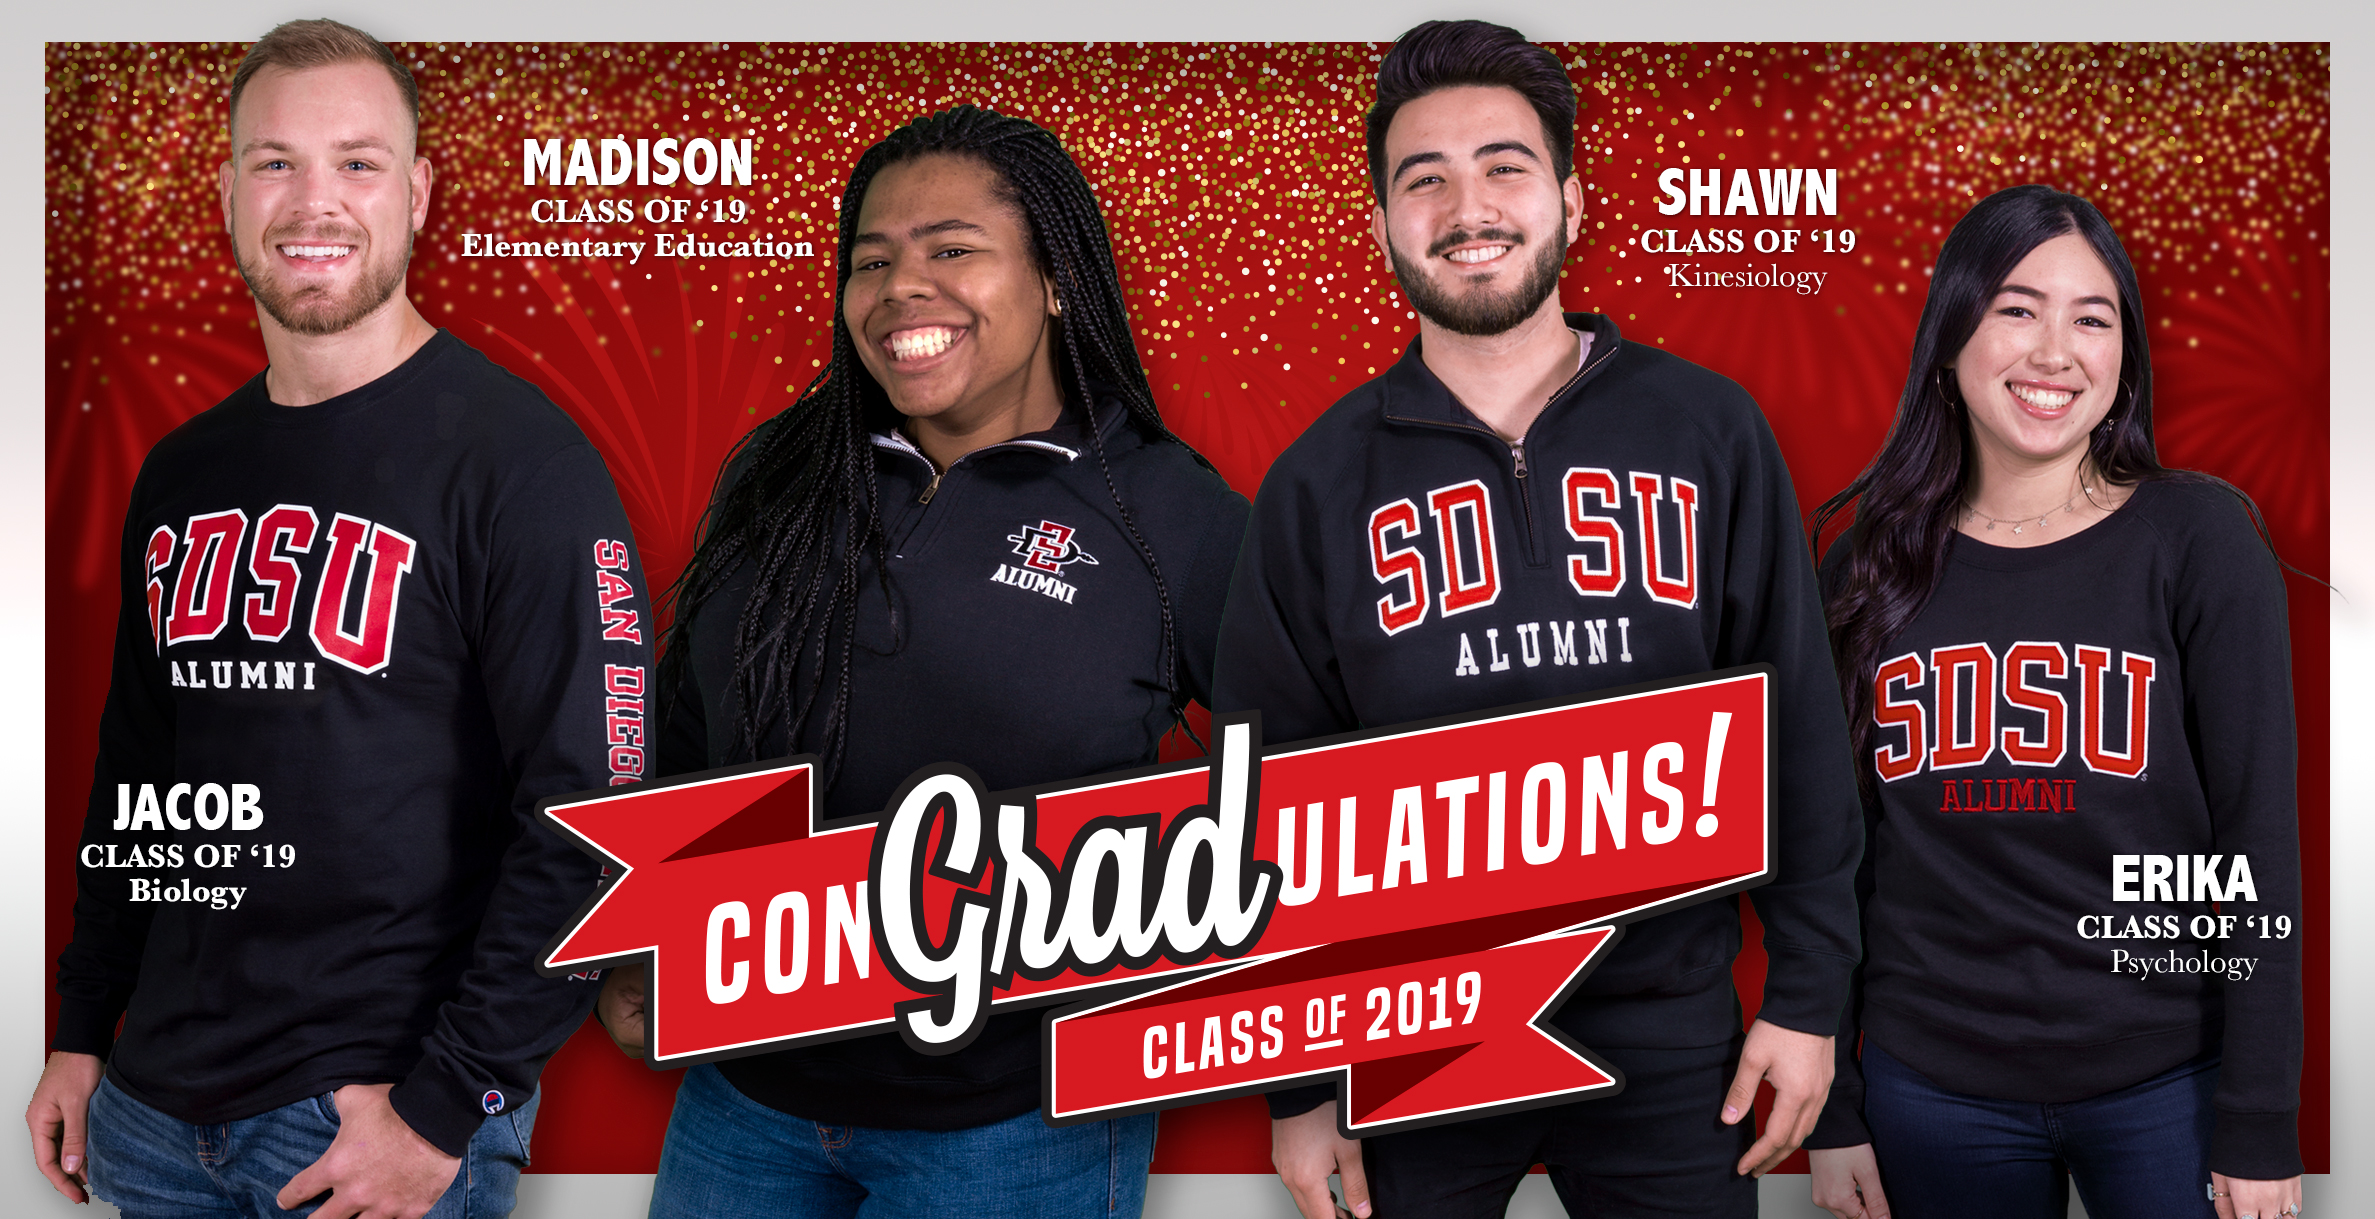 ConGradulations Class of 2019! Jacob, Class of '19 - Biology. Madison, Class of '19 - Elementary Education. Shawn, Class of '19 - Kinesiology. Erika, Class of '19 - Psychology.